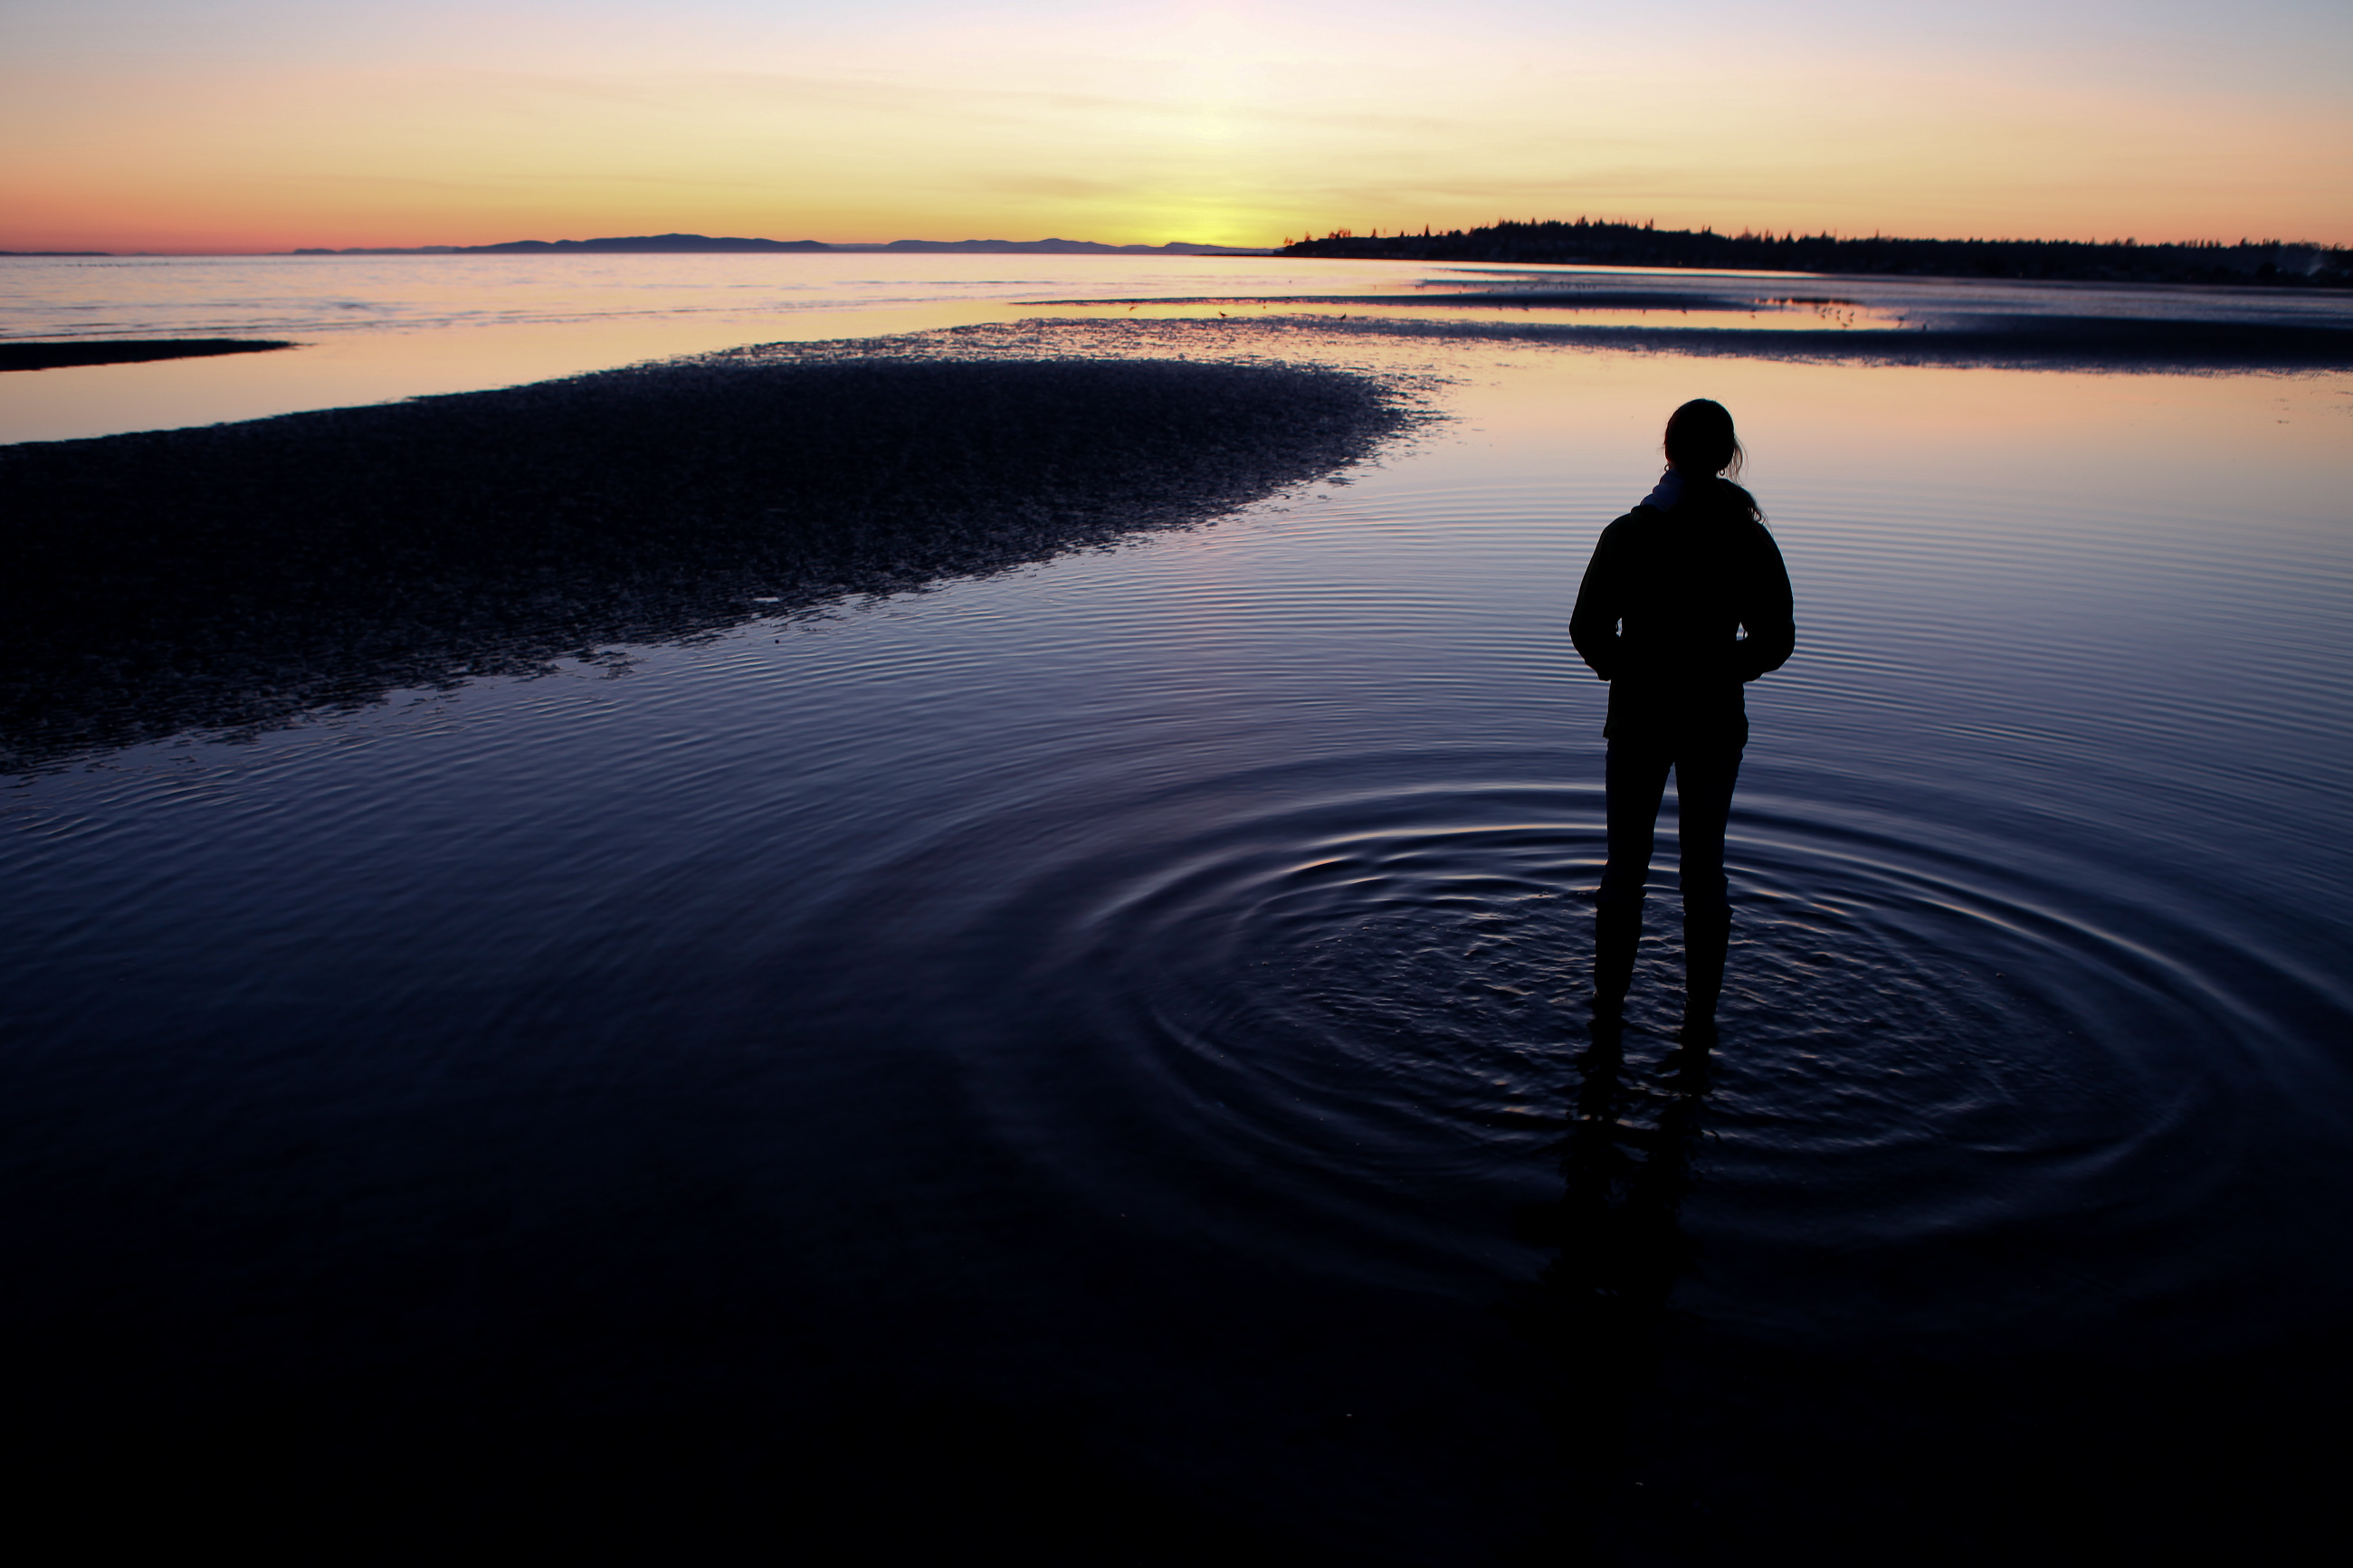 A person standing in Bellingham Bay at sunset